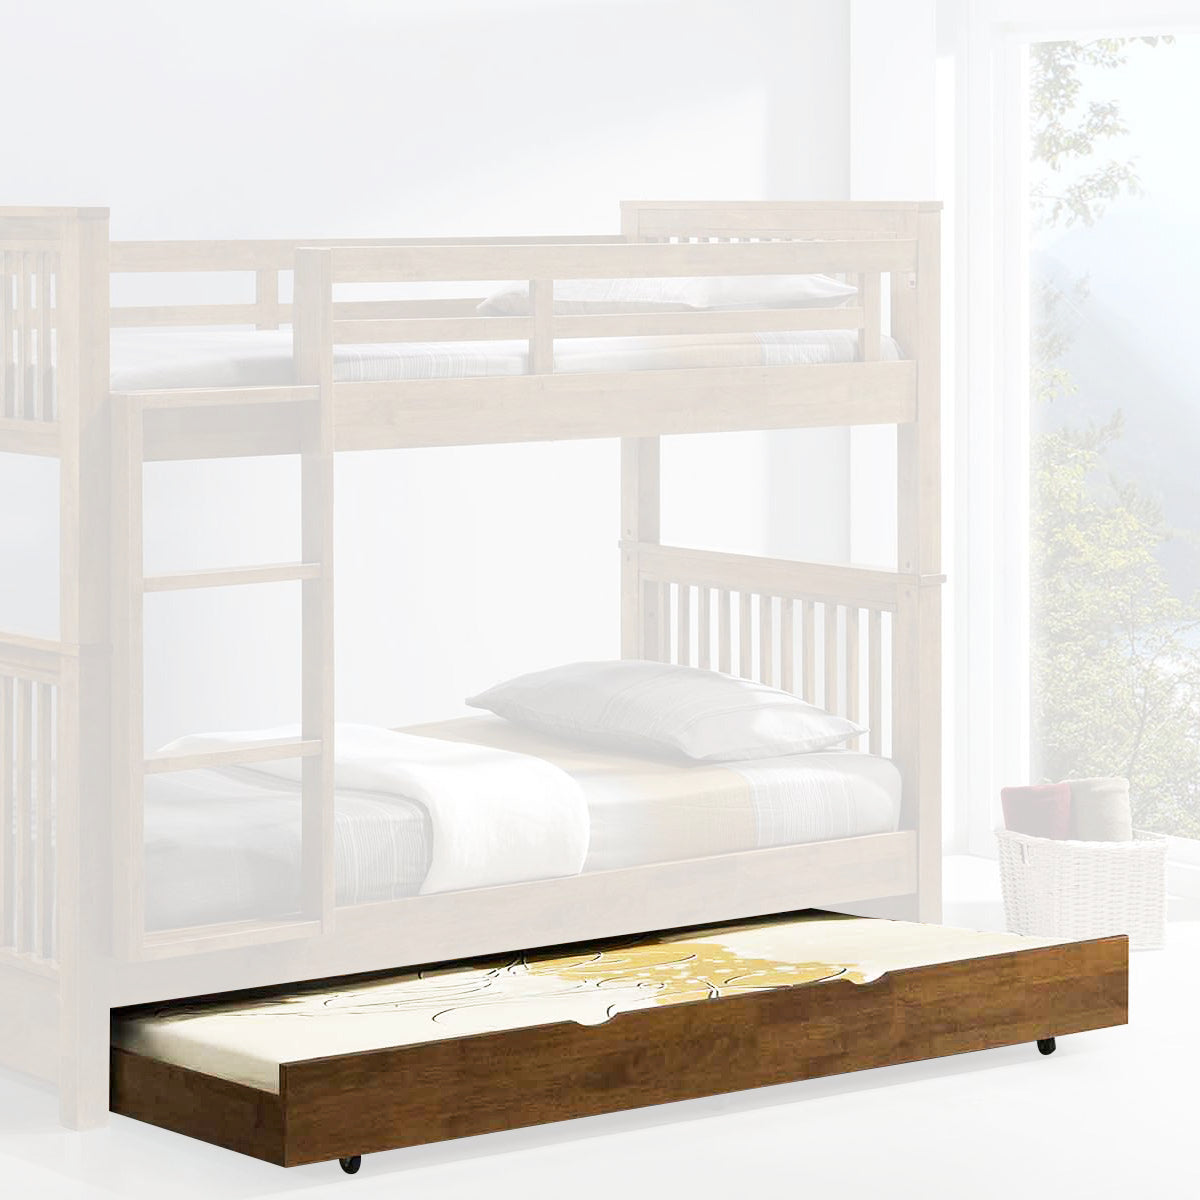 All Solid Wood Bunk Beds w/ Anti-Microbial Properties